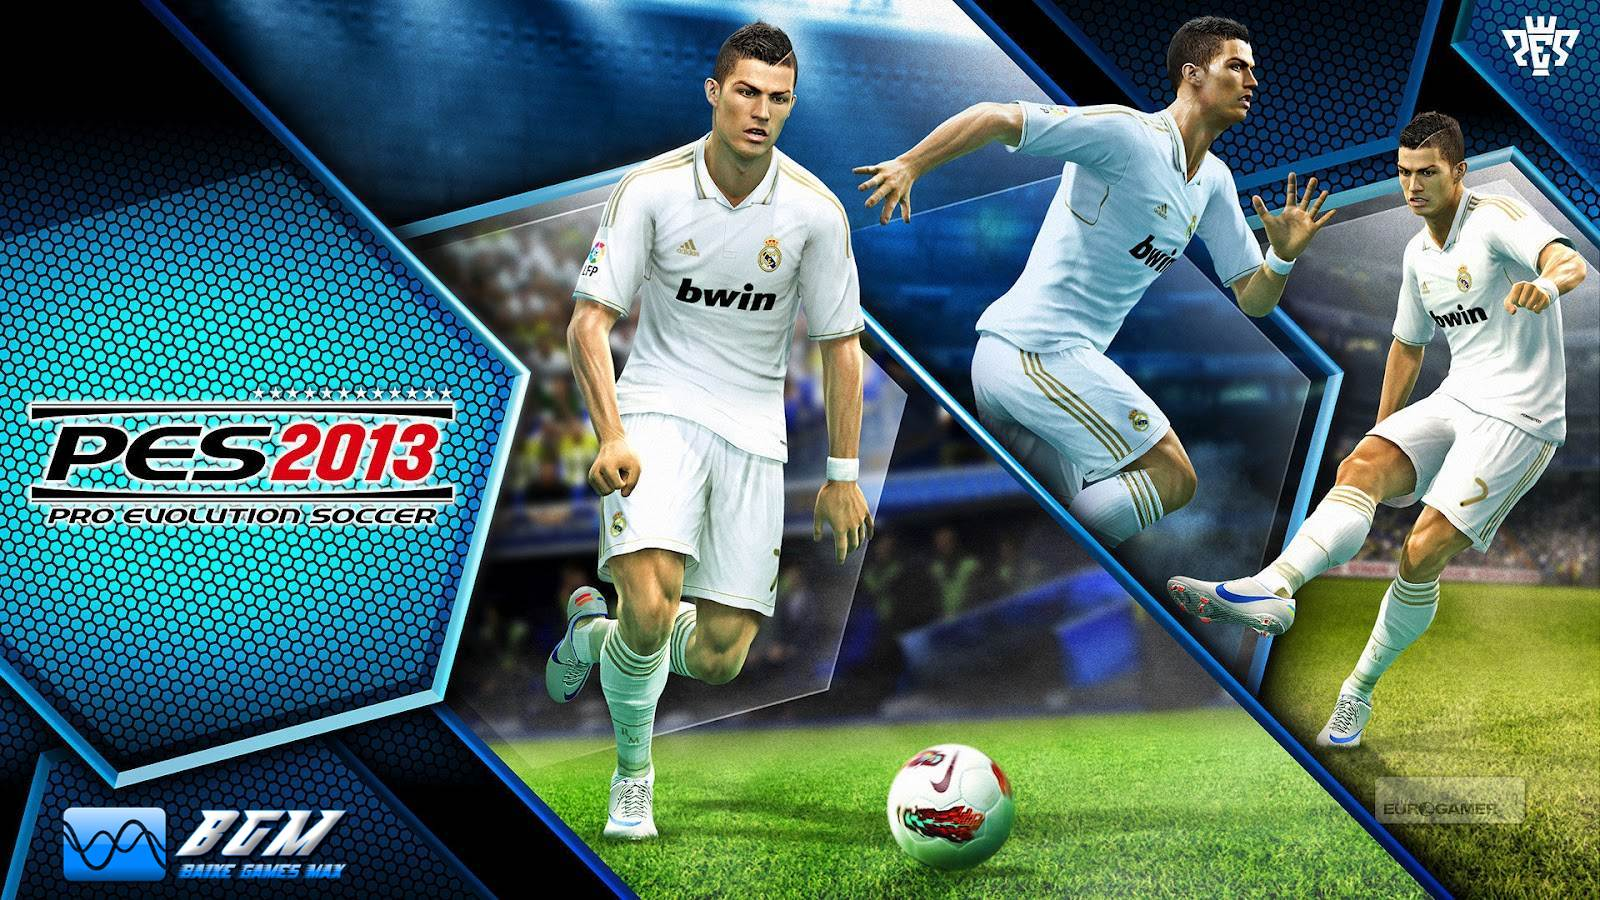 NOVO WALLPAPER DO PRO EVOLUTION SOCCER 2013 COM CRISTIANO RONALDO.